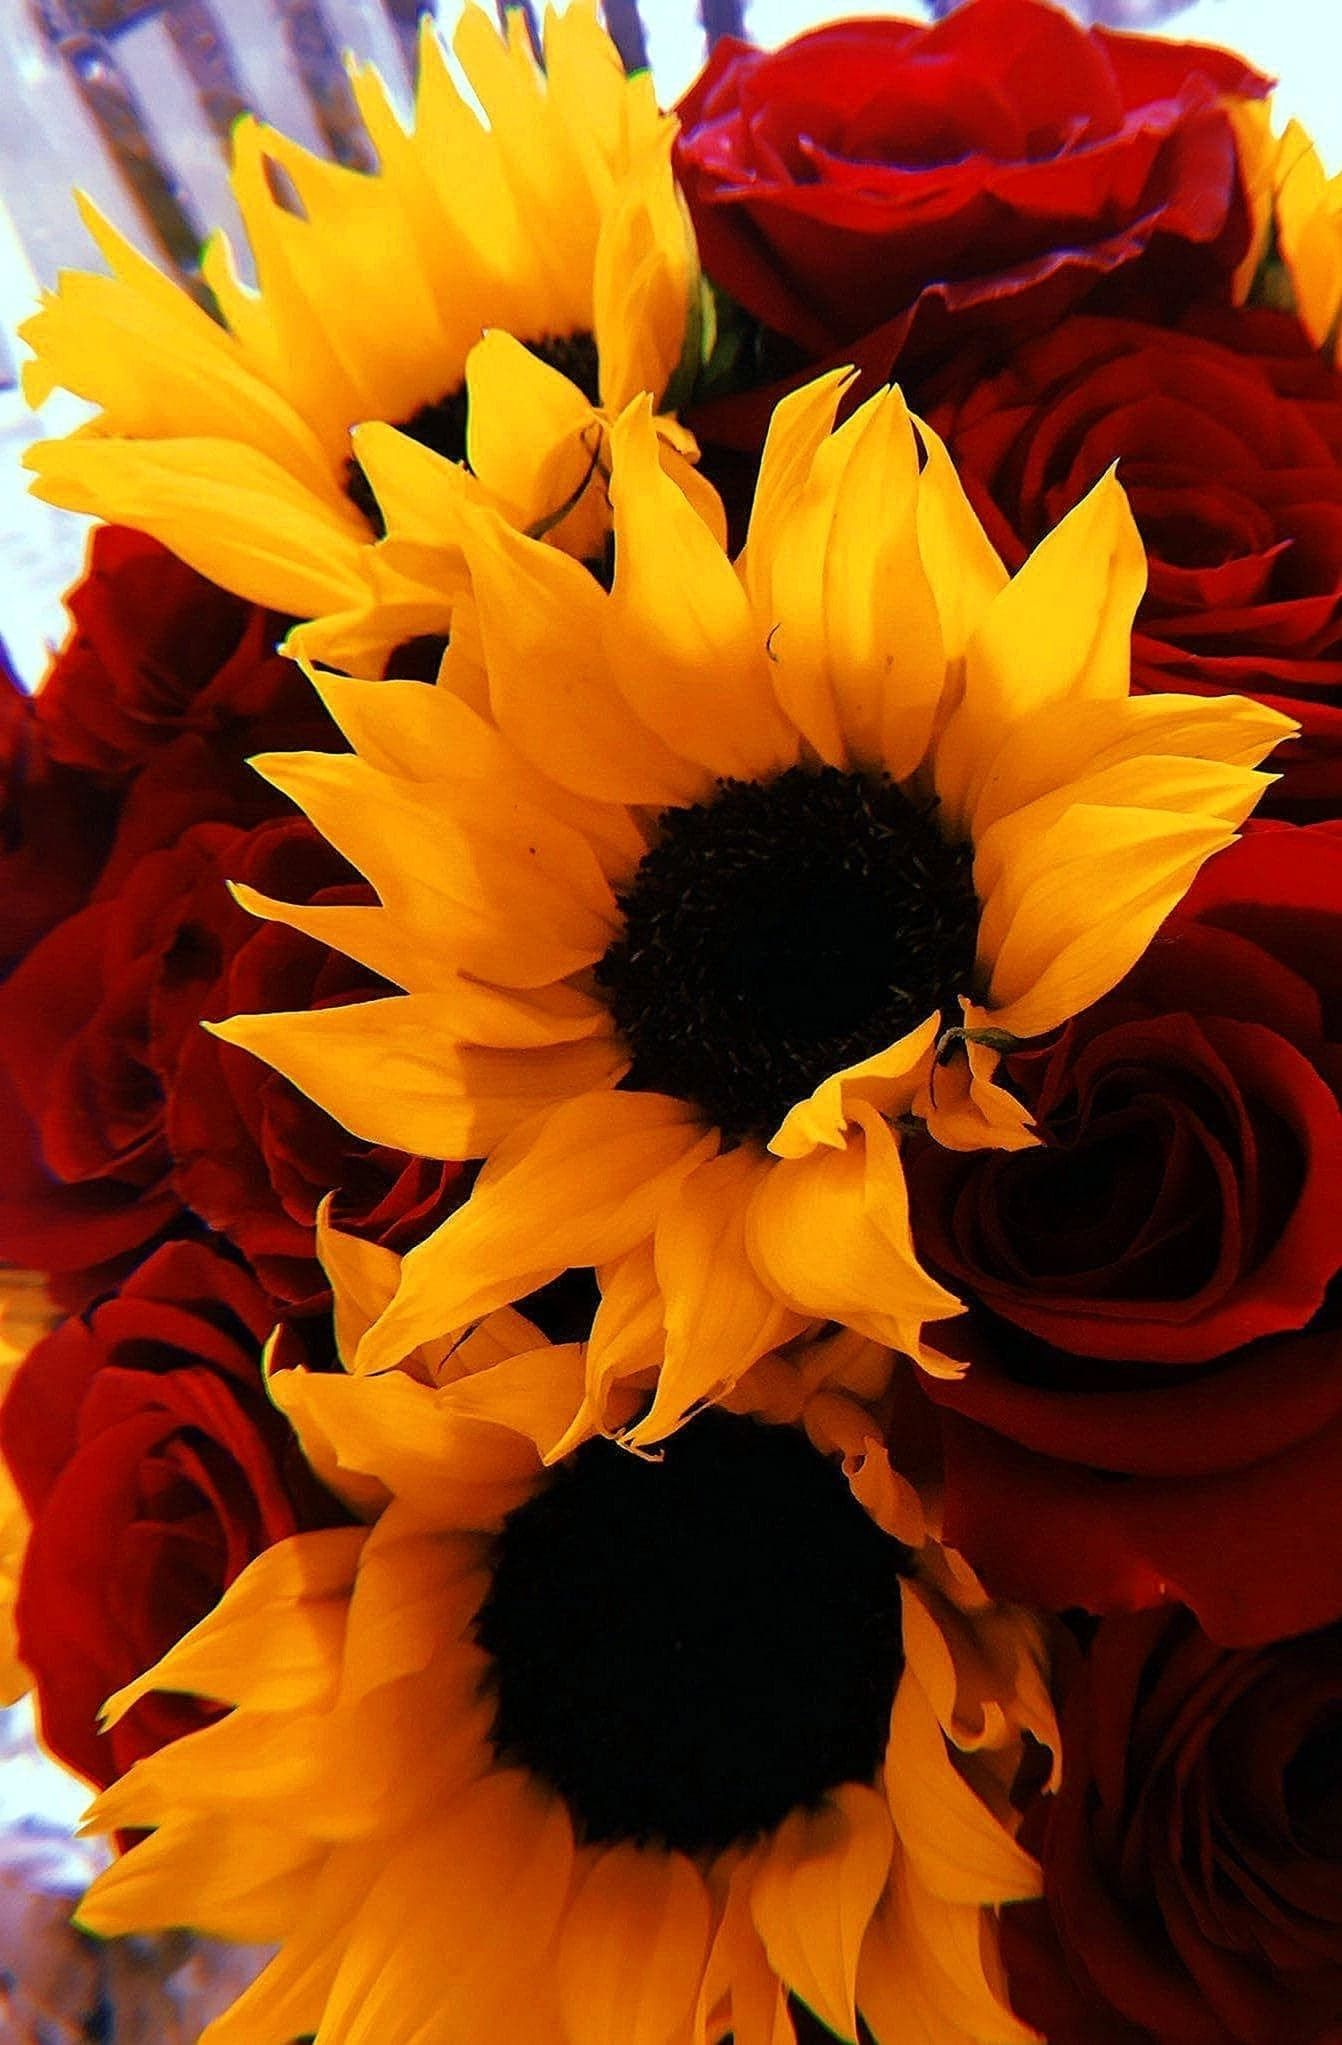 Roses And Sunflowers Background : roses, sunflowers, background, Picture, Sunflowers, Roses, Roses,, Wallpaper,, Sunflower, Wallpaper